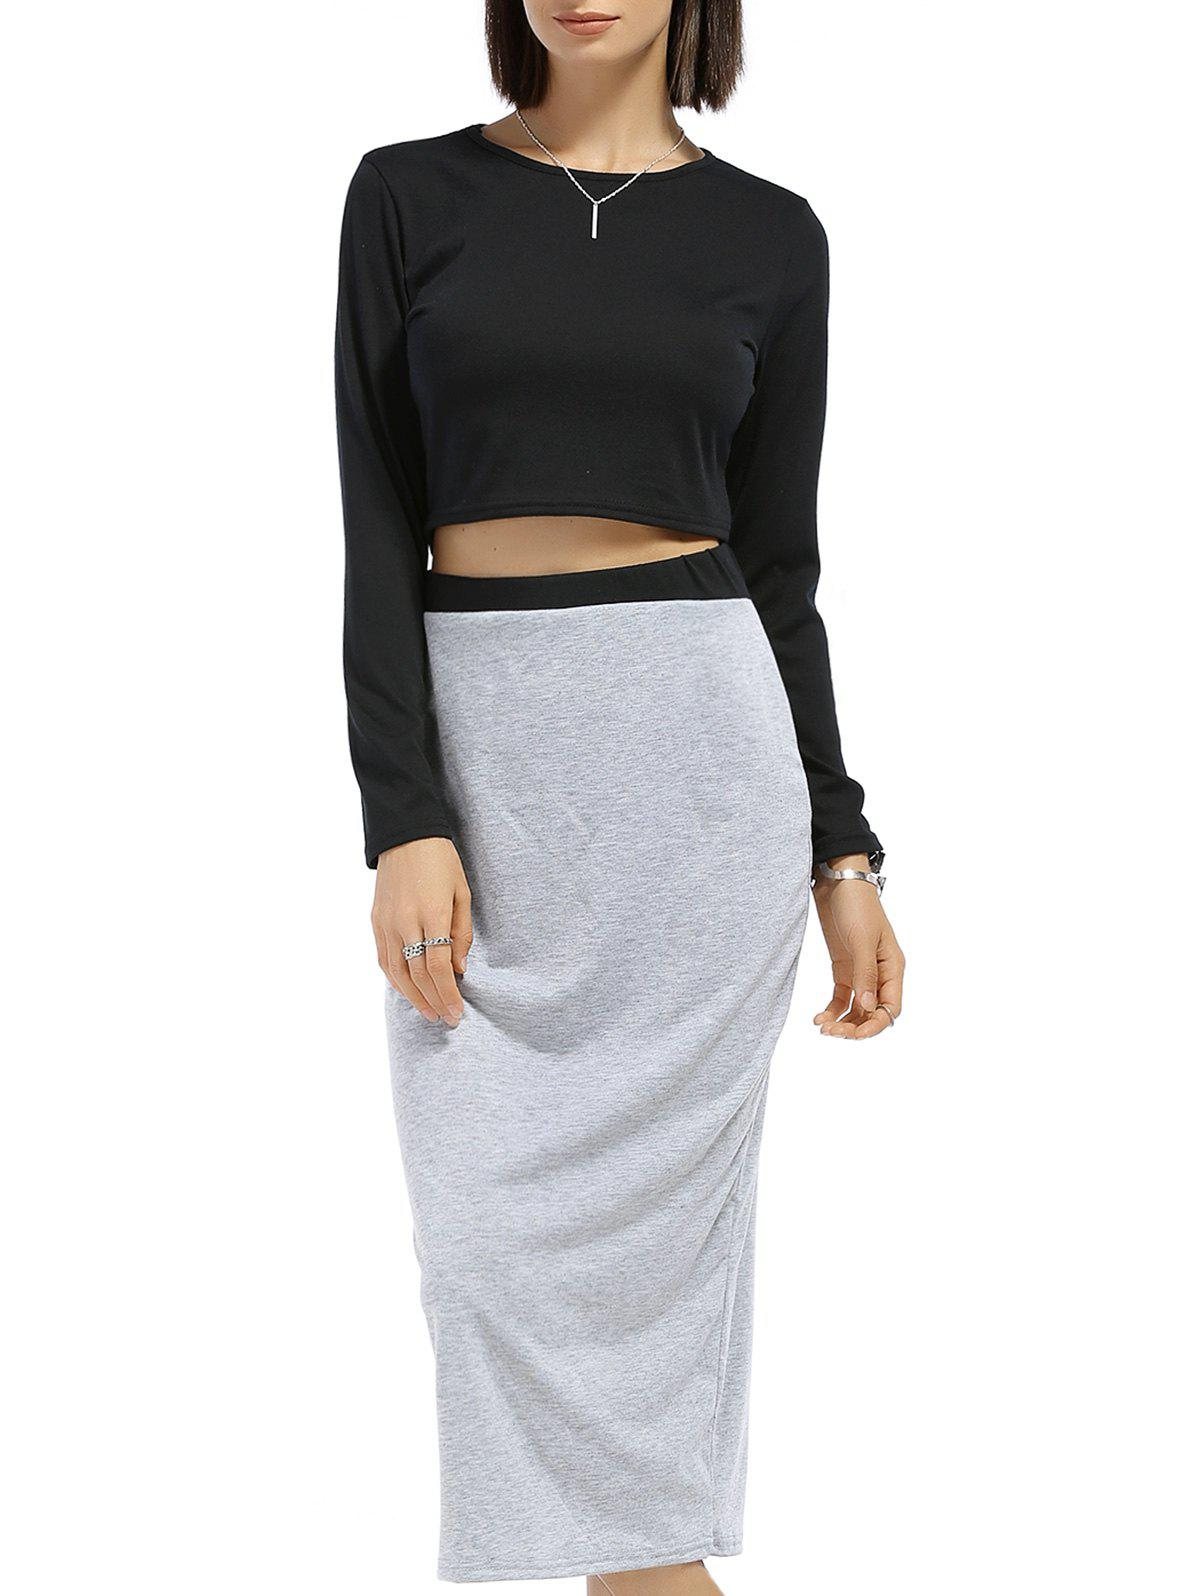 Chic Long Sleeve Round Neck Solid Color Crop Top + Spliced Skirt Women's Twinset - BLACK/GREY M